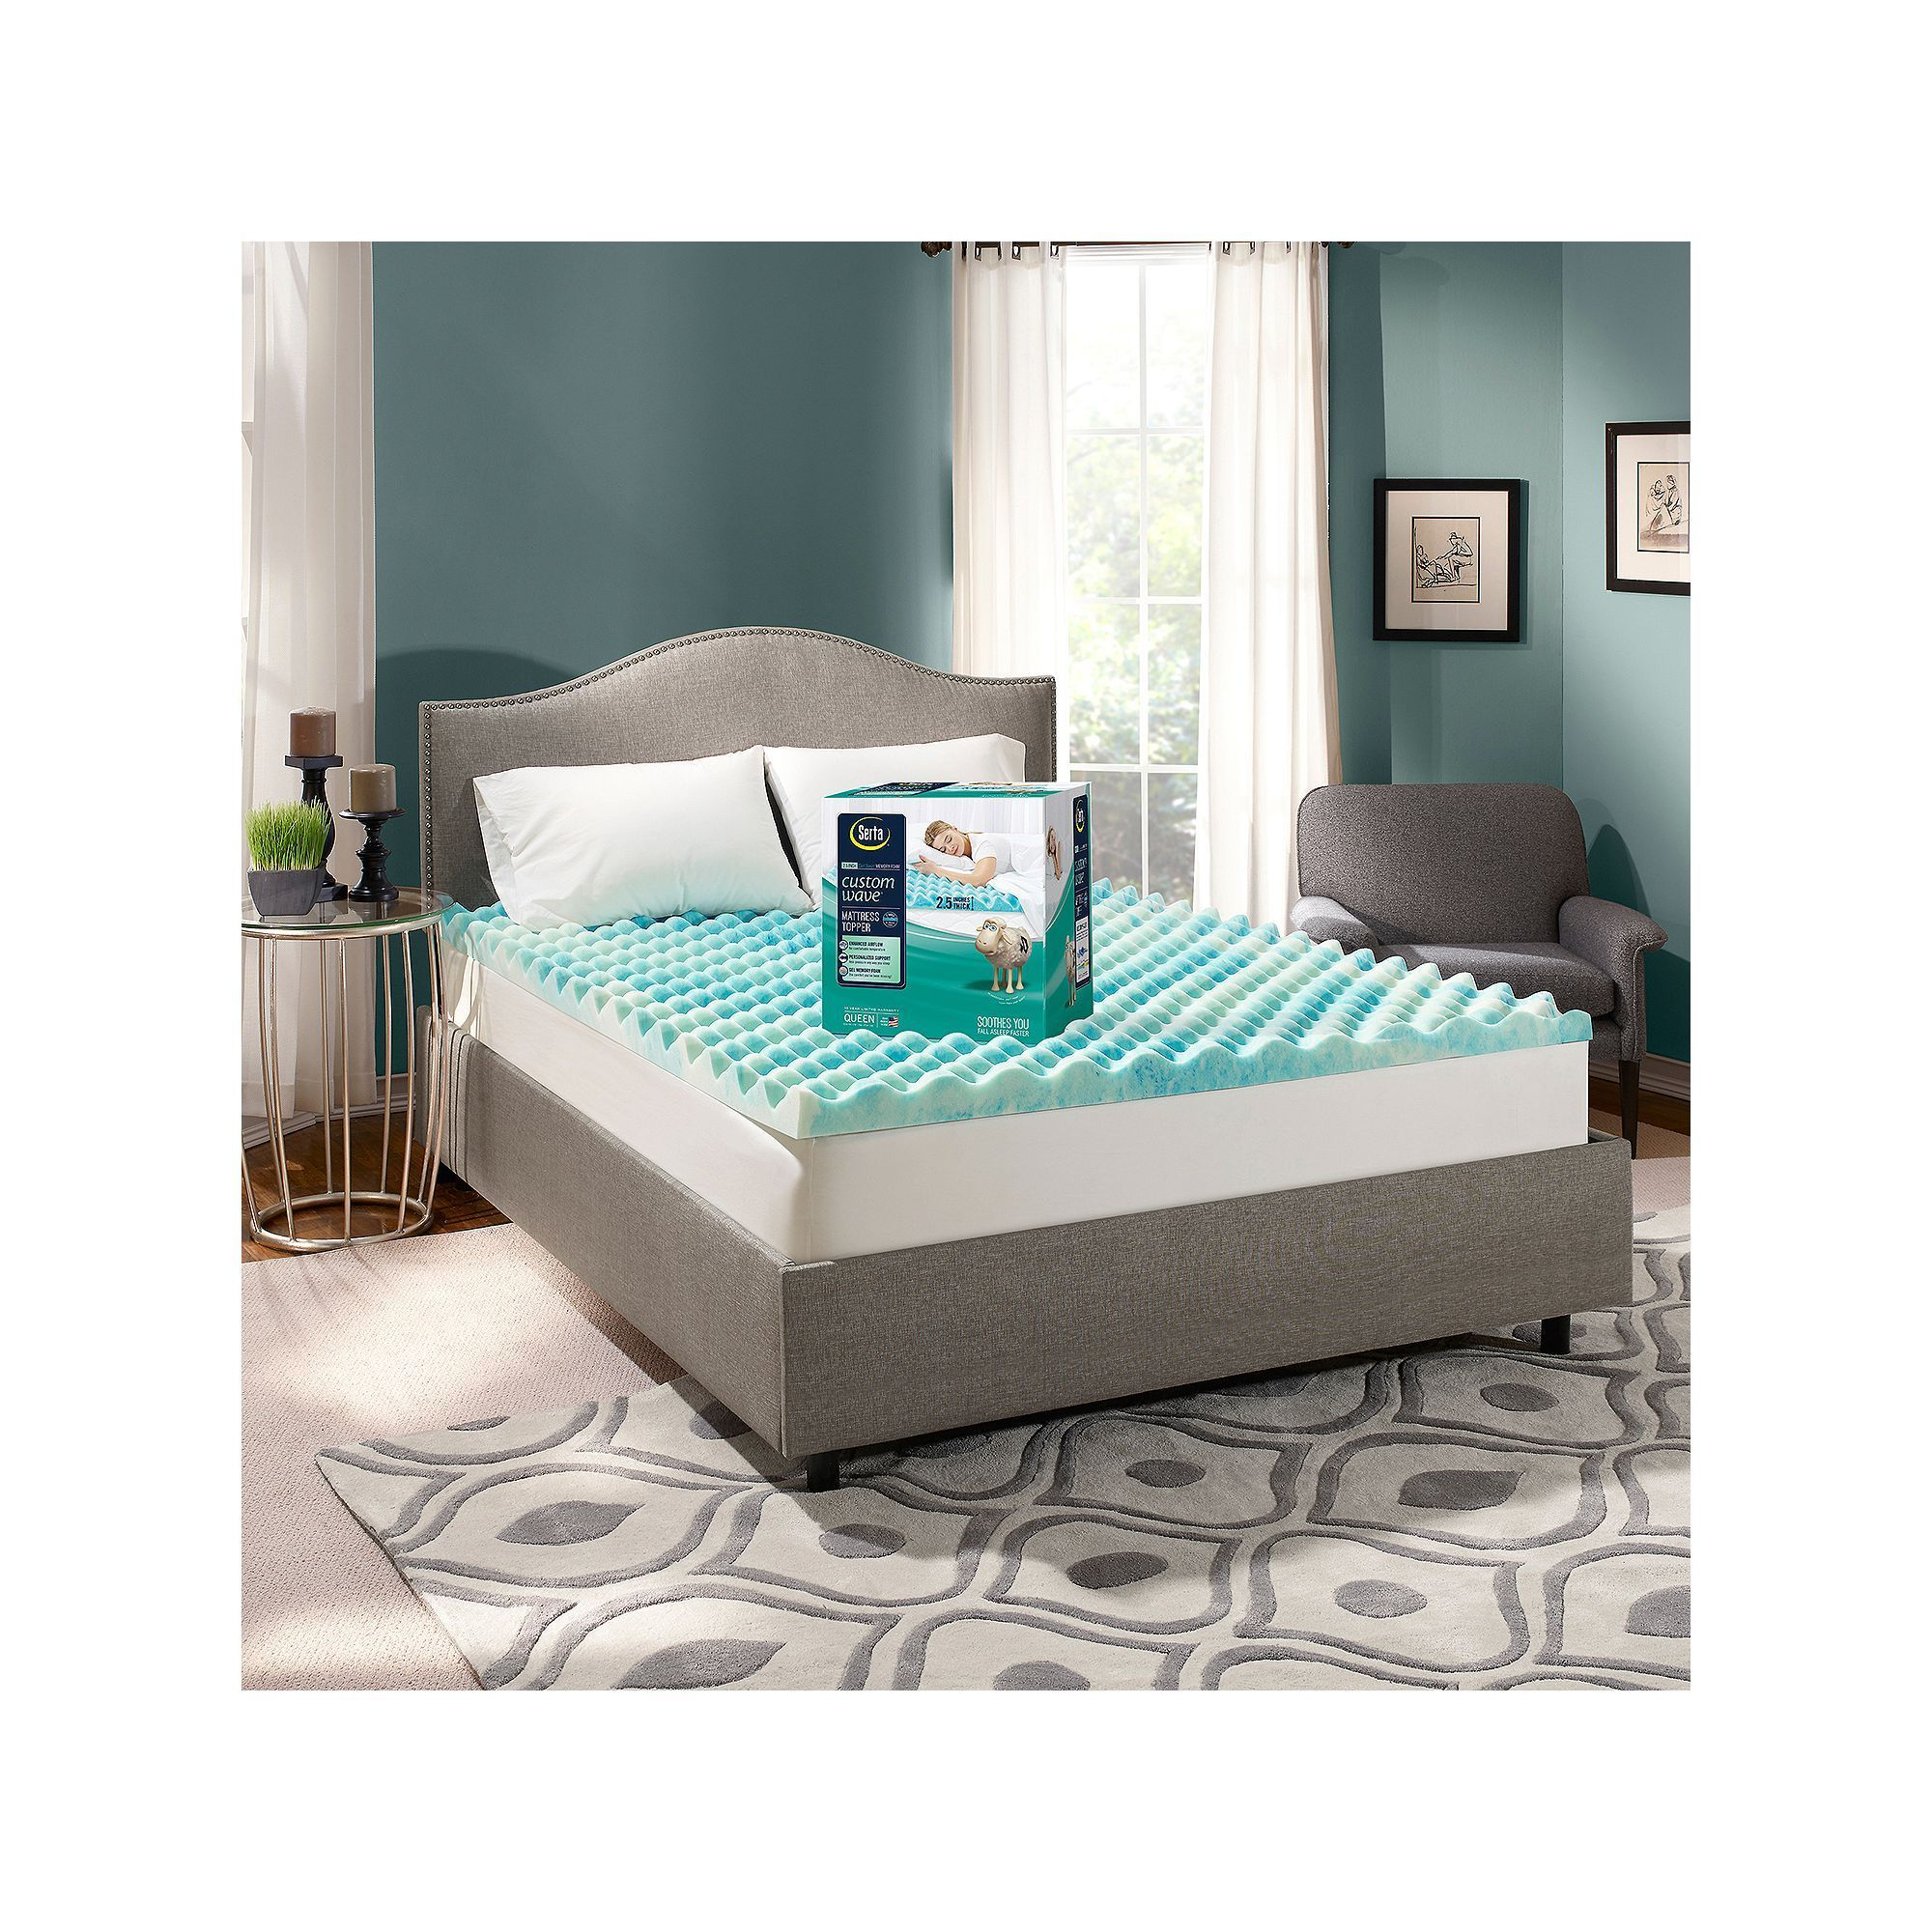 toppers topper gel giselle d memory fabric var bamboo mattress cover top cool itm bedding foam